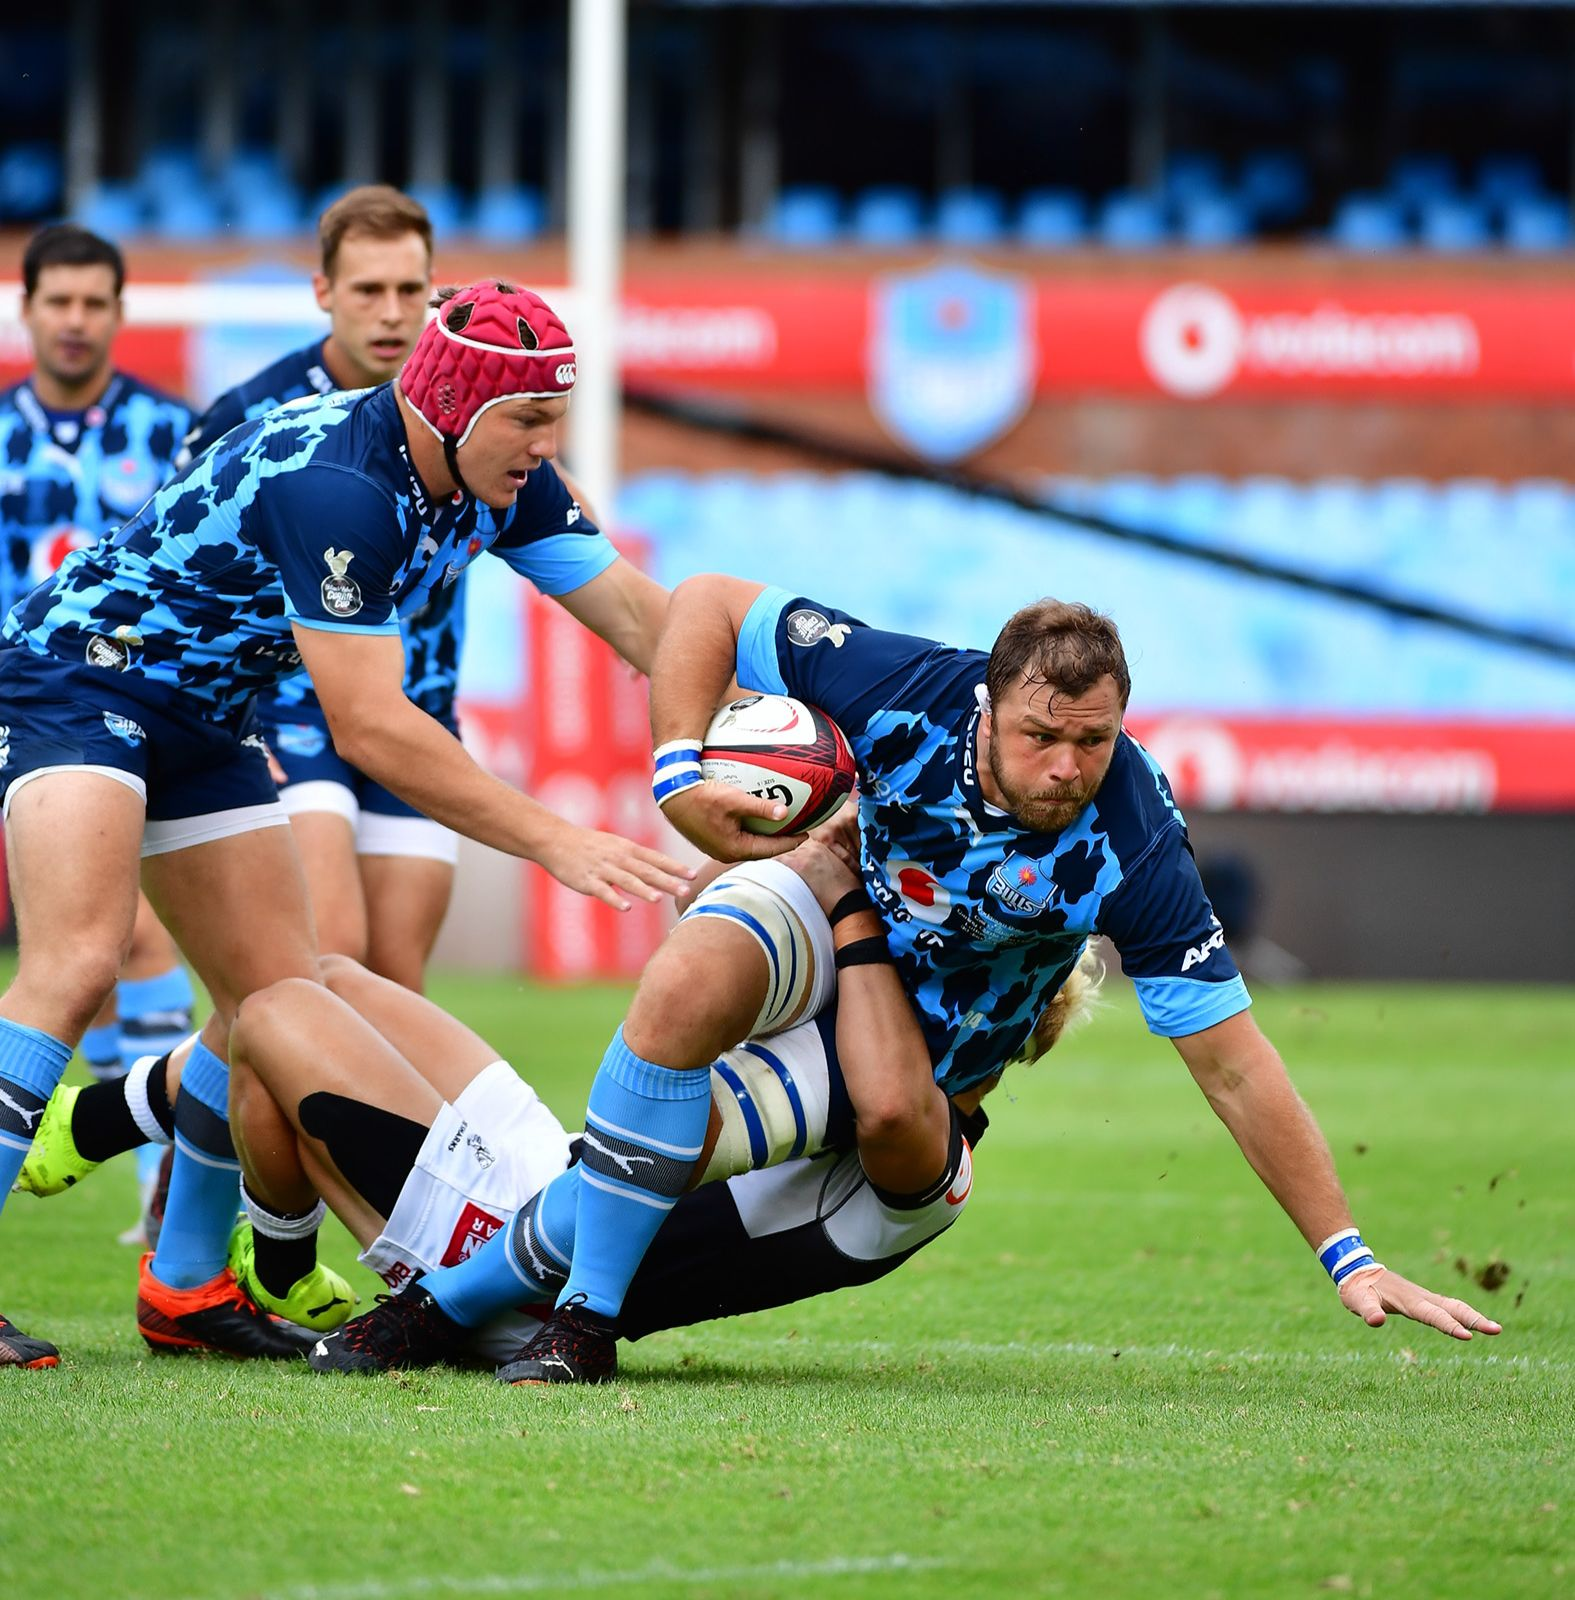 Vodacom Bulls secure Carling Currie Cup at the death